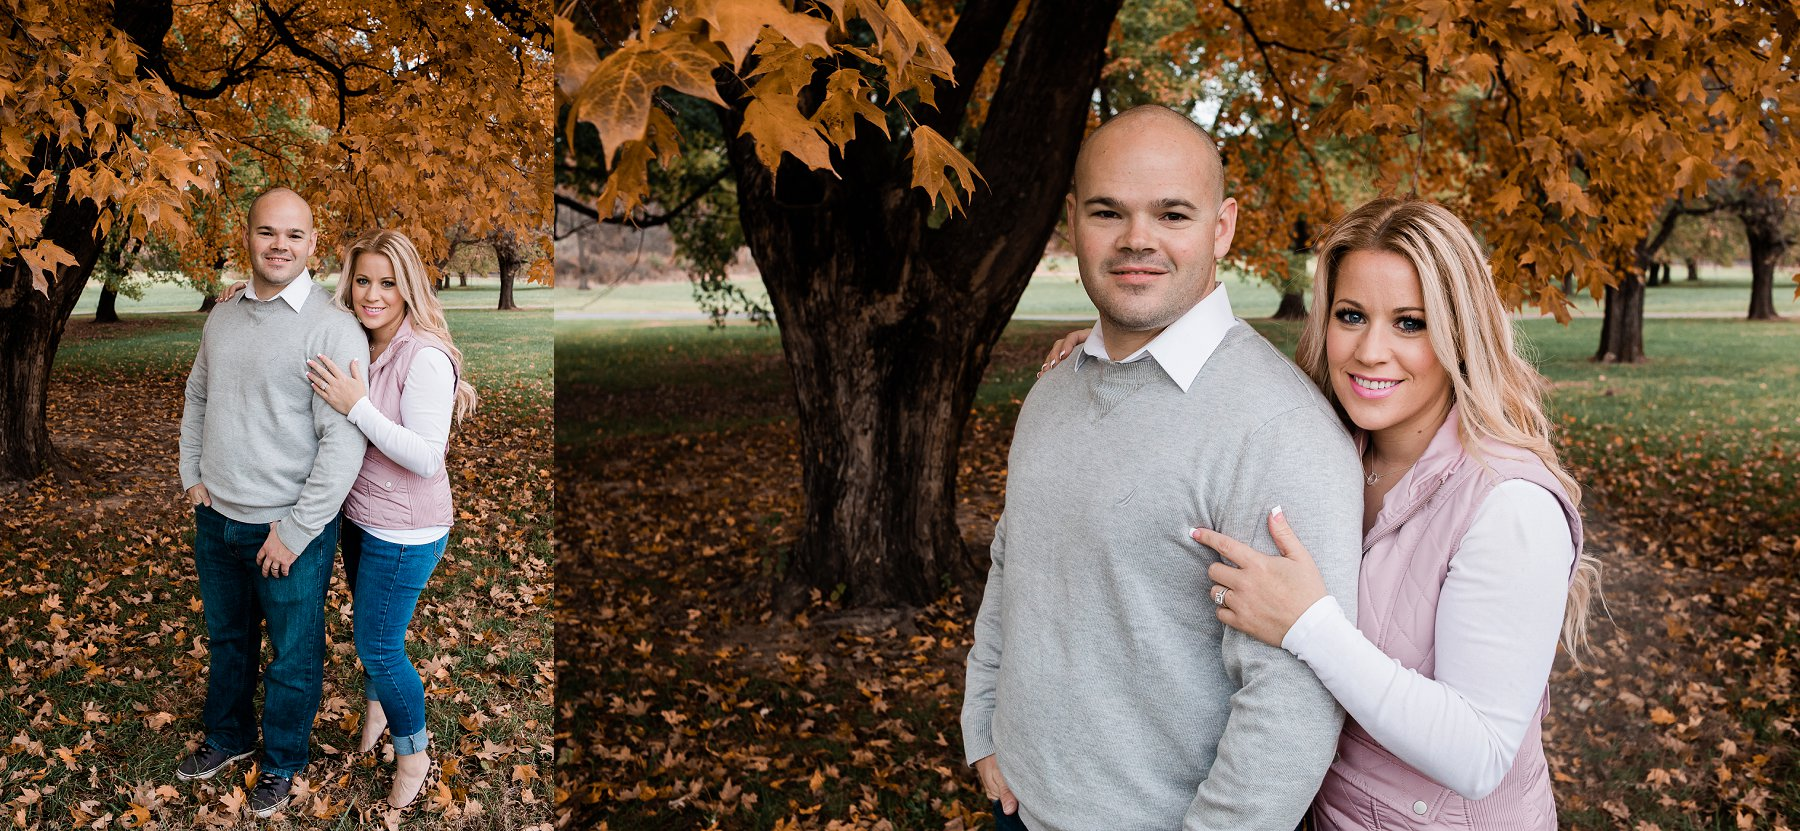 Fall Family Photography at Belvoir WInery by Family Photographer in Kansas City, Merry Ohler (4)